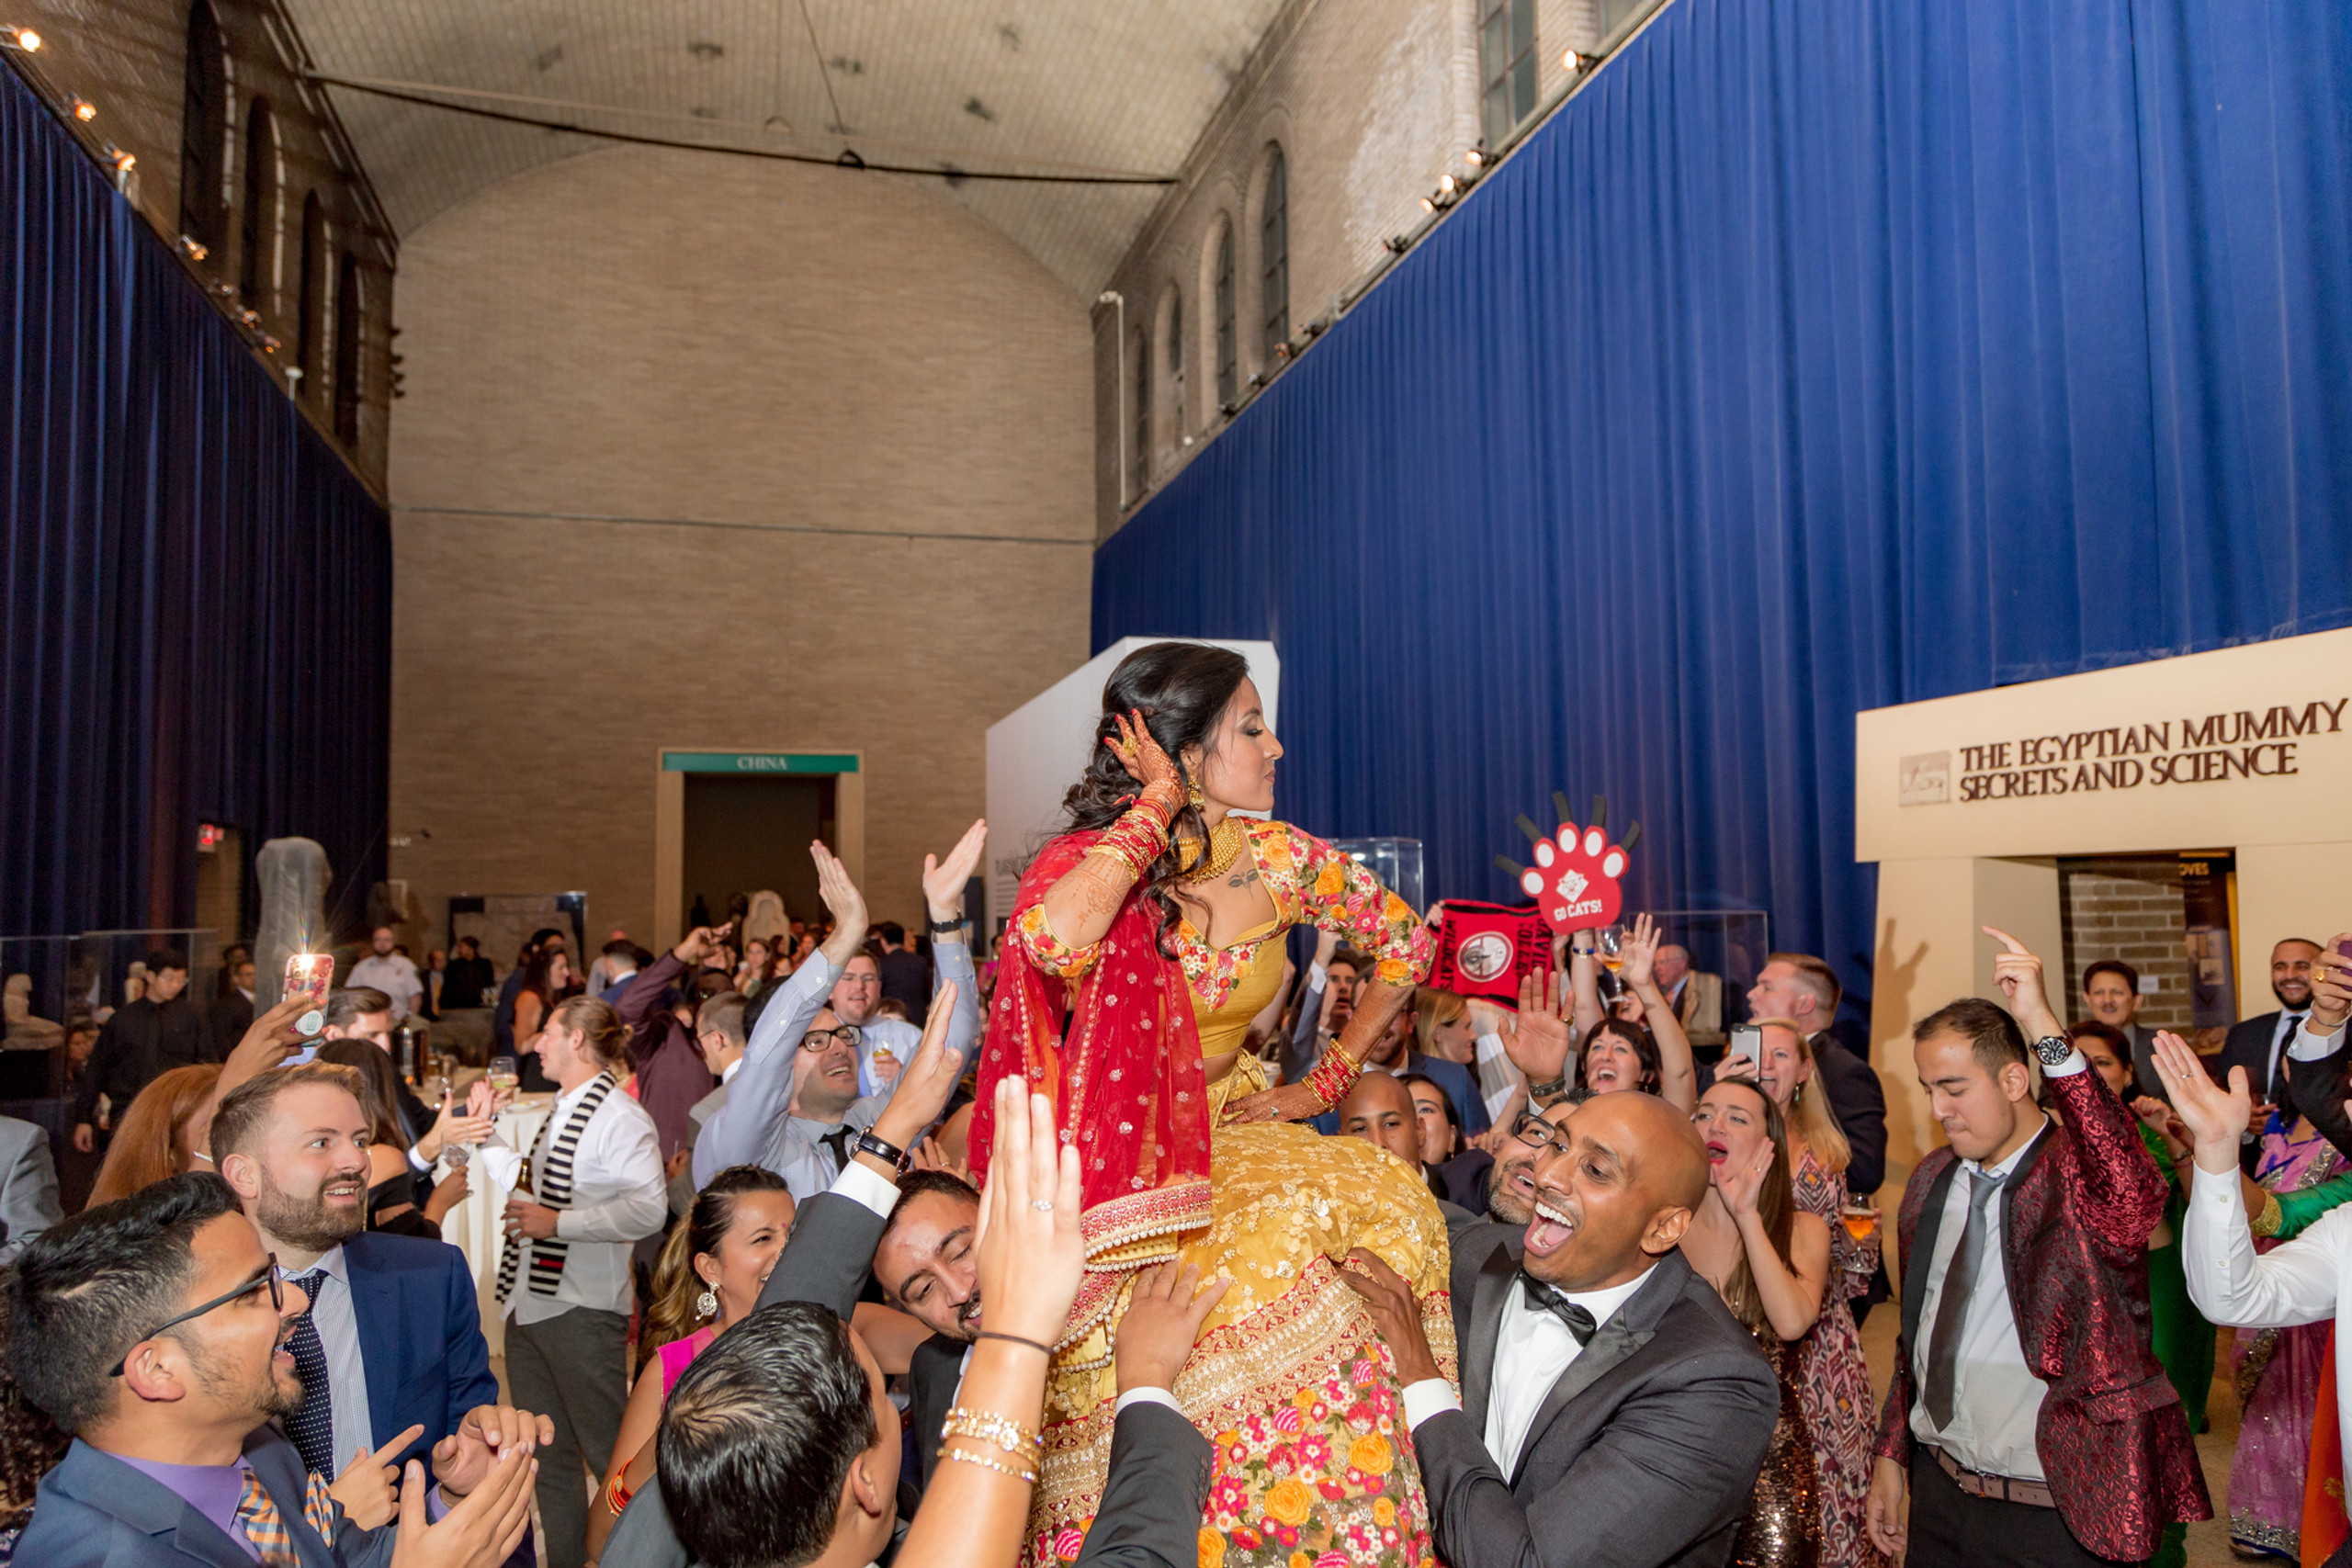 The bride's family hoist her to the air in celebration during the wedding reception at the Penn Museum in Philadelphia, Pennsylvania.